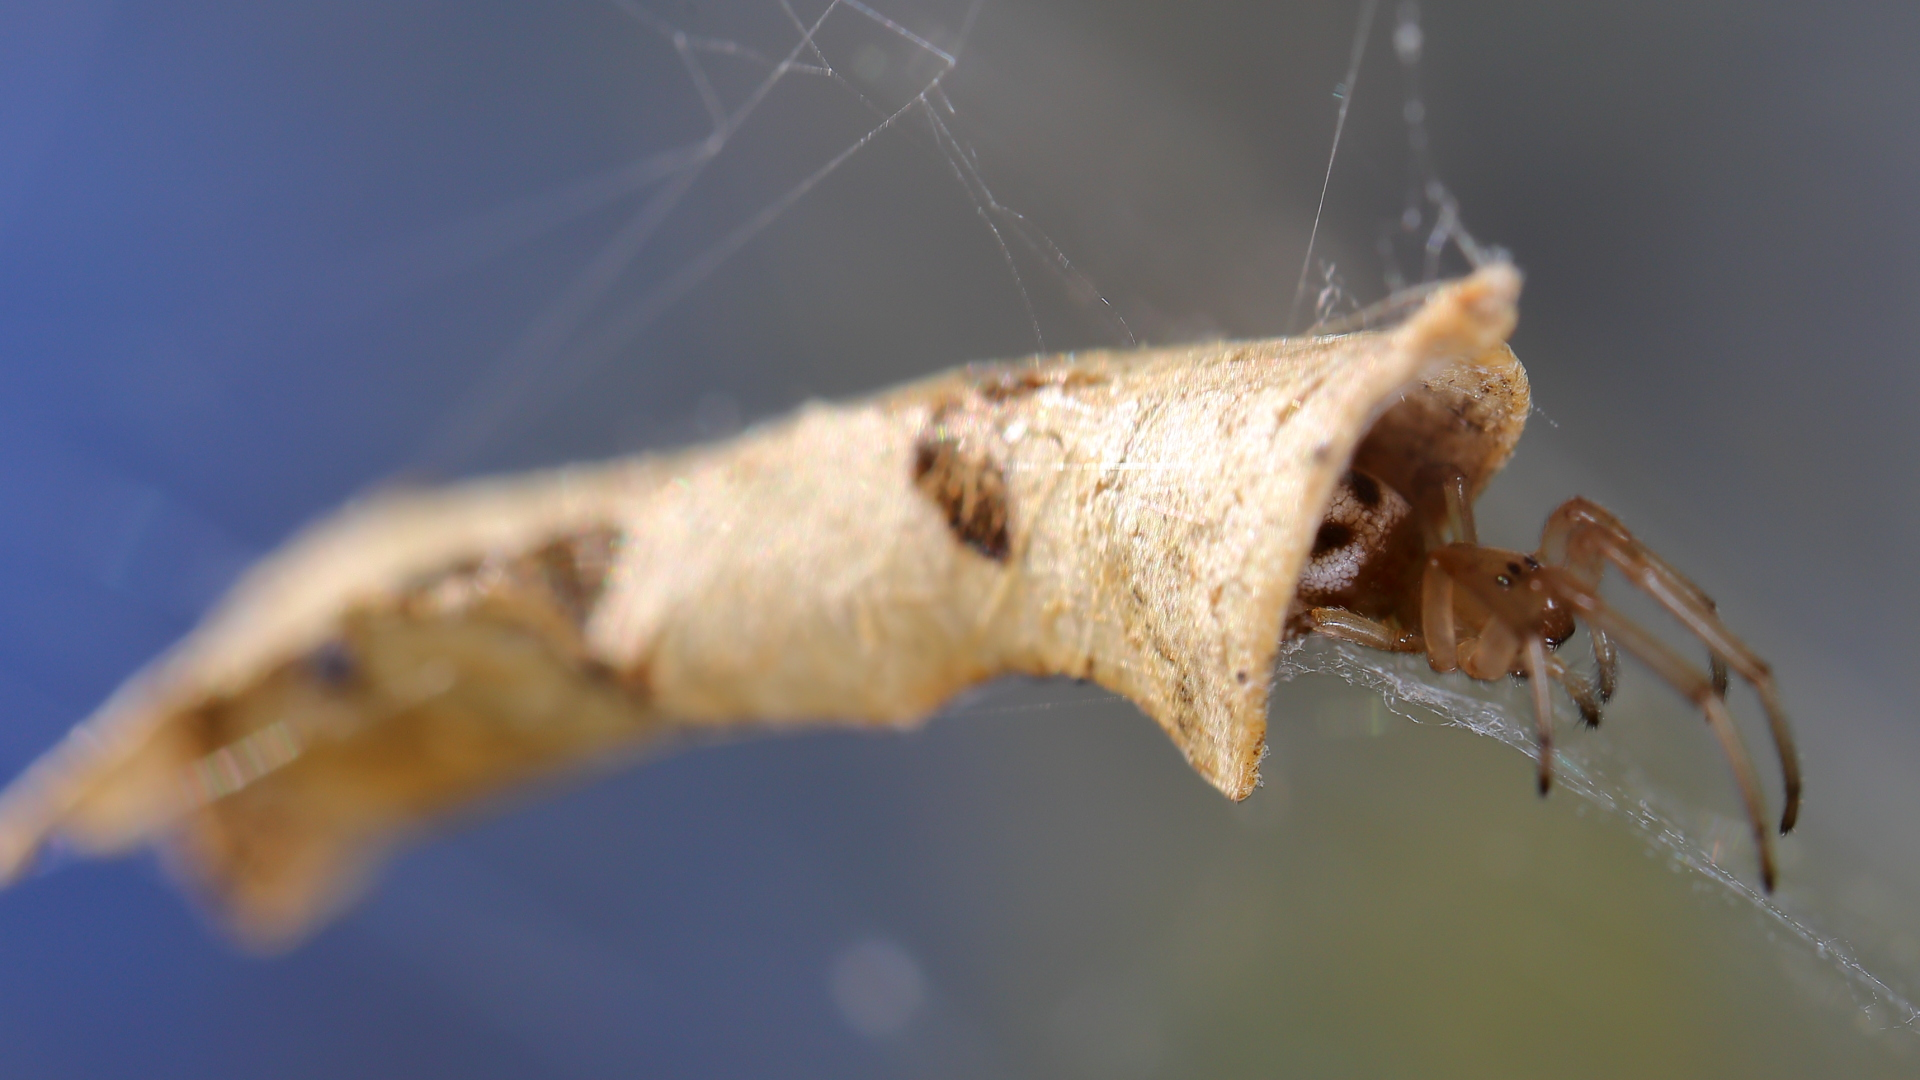 Leaf Curling Spider photo